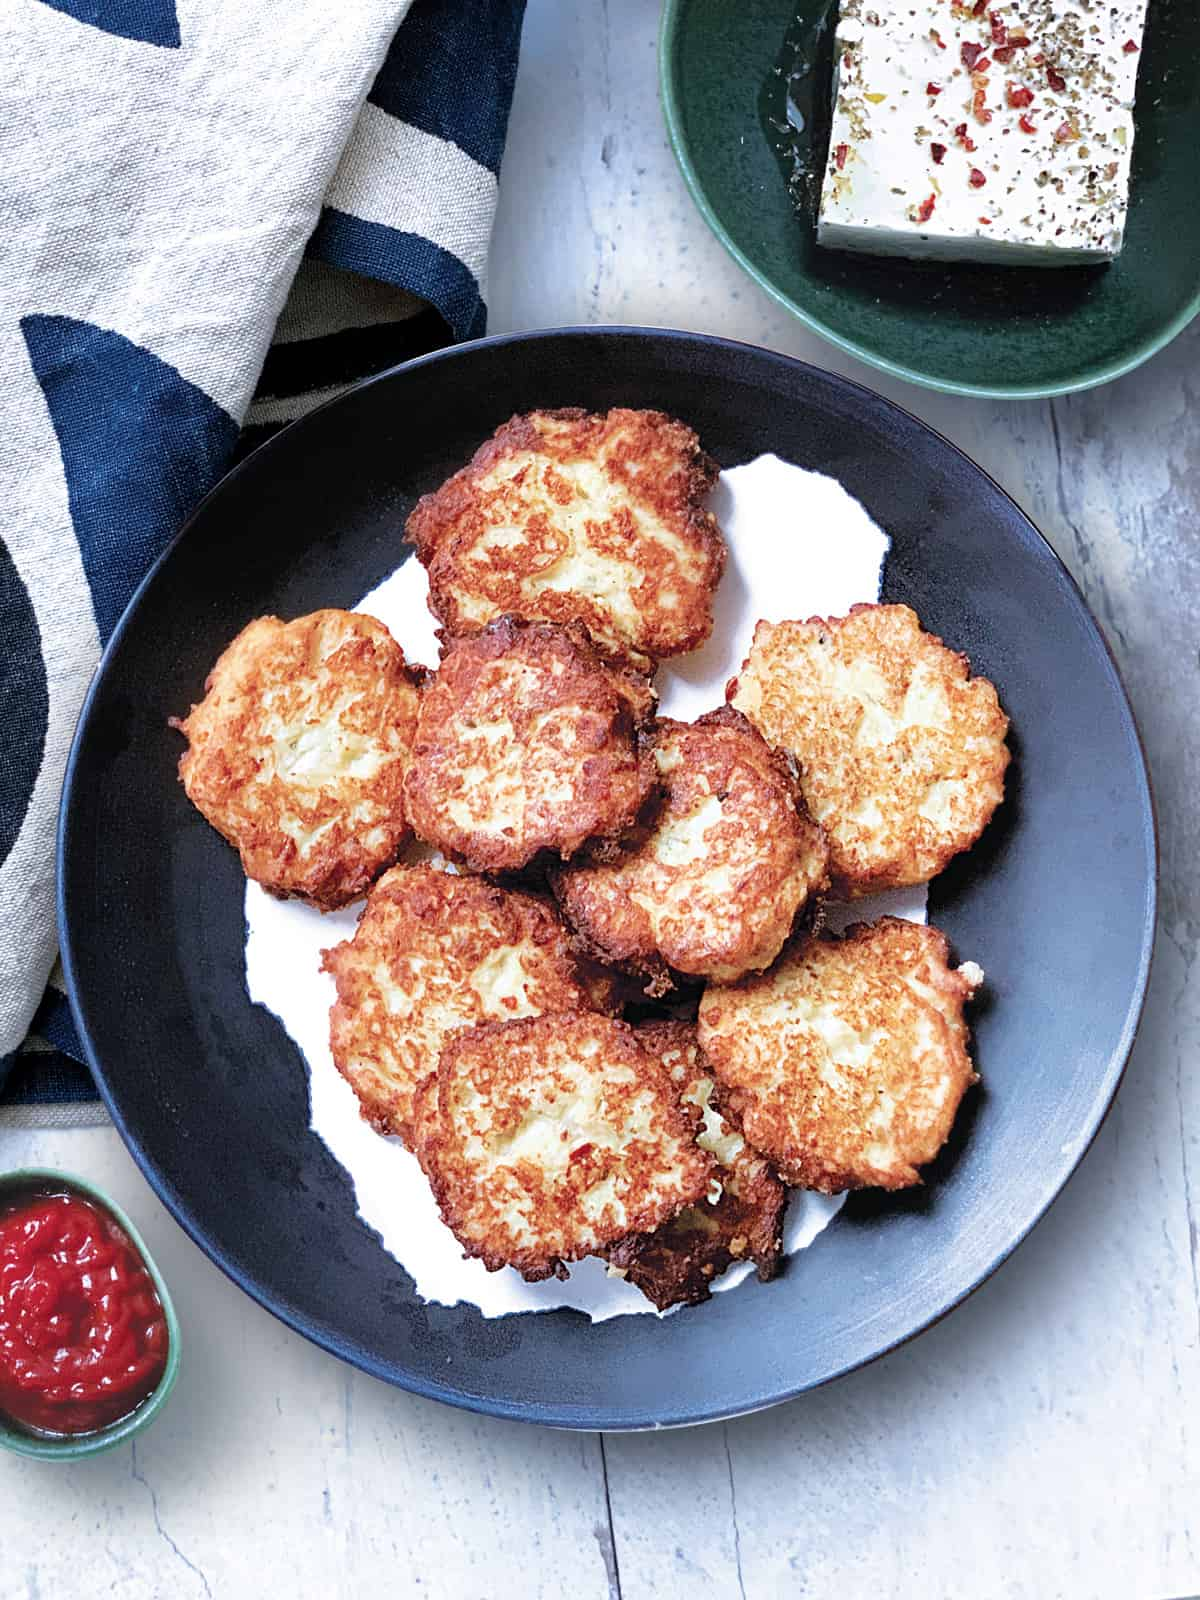 Aplate with cauliflower fritters, a bowl with feta cheese and a small container with ketchup. A cloth napkin at the back.